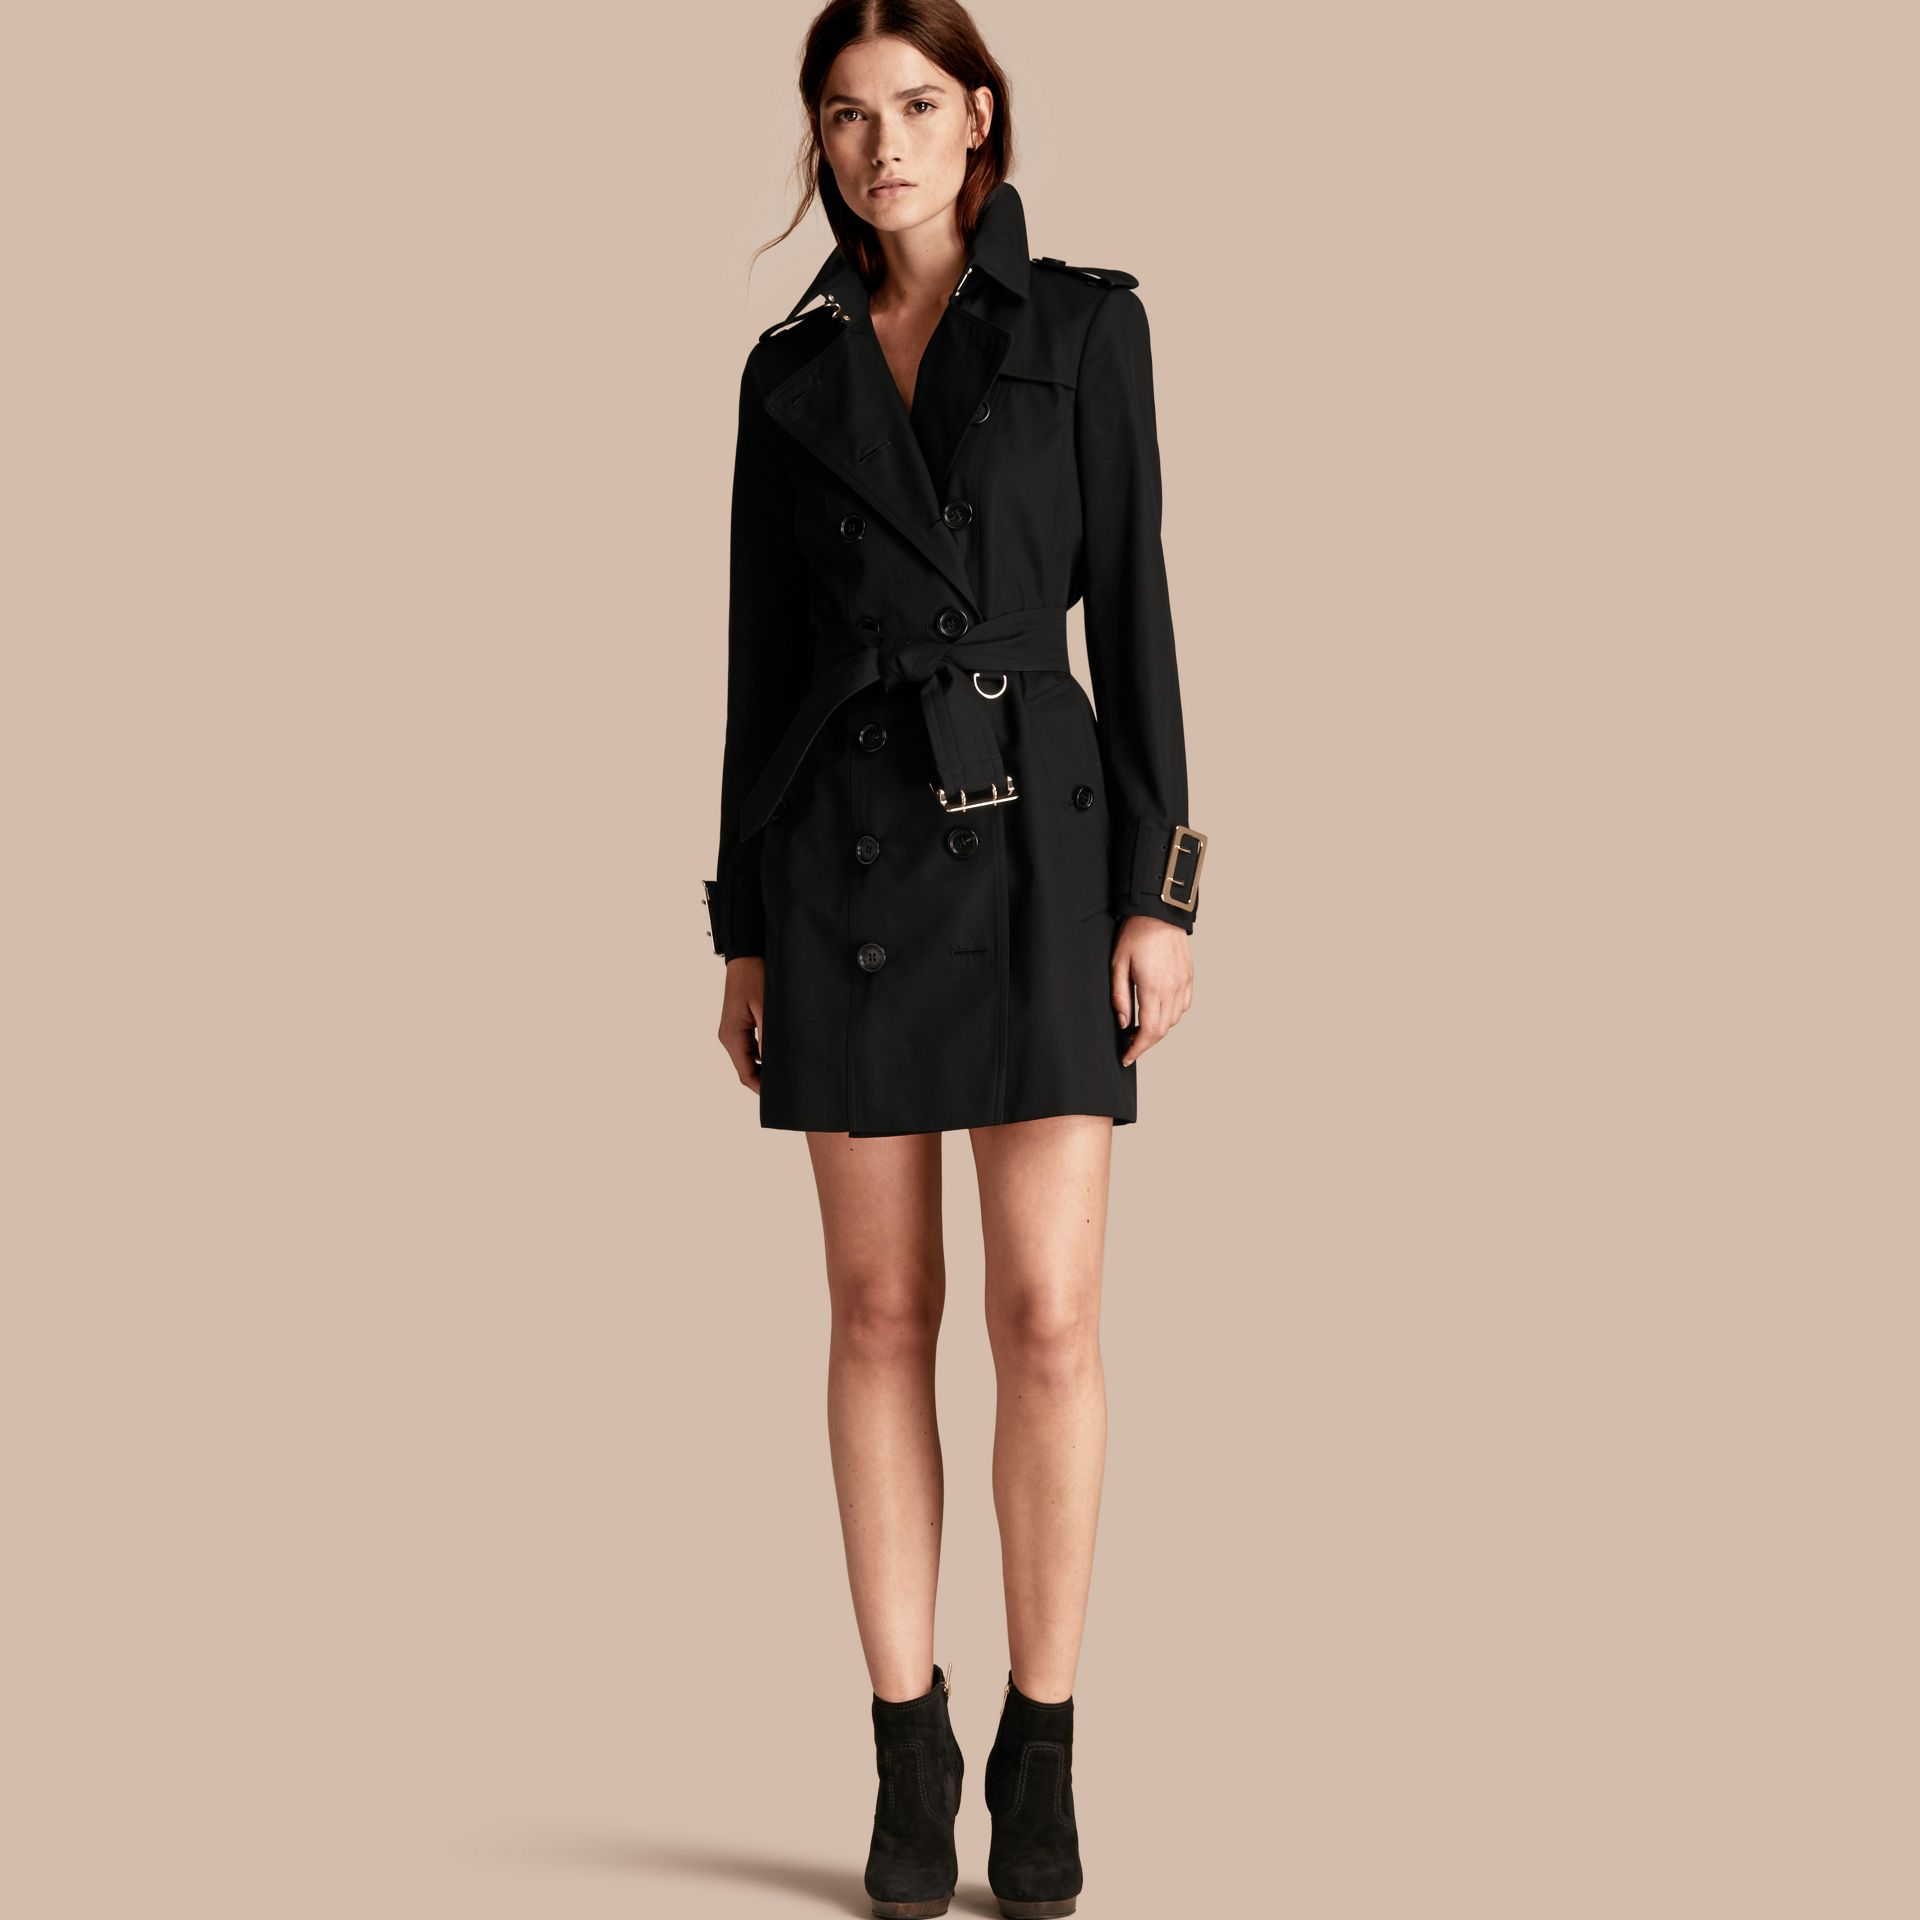 Cotton Gabardine Trench Coat with Oversize Buckle Detail Black - gallery image 1